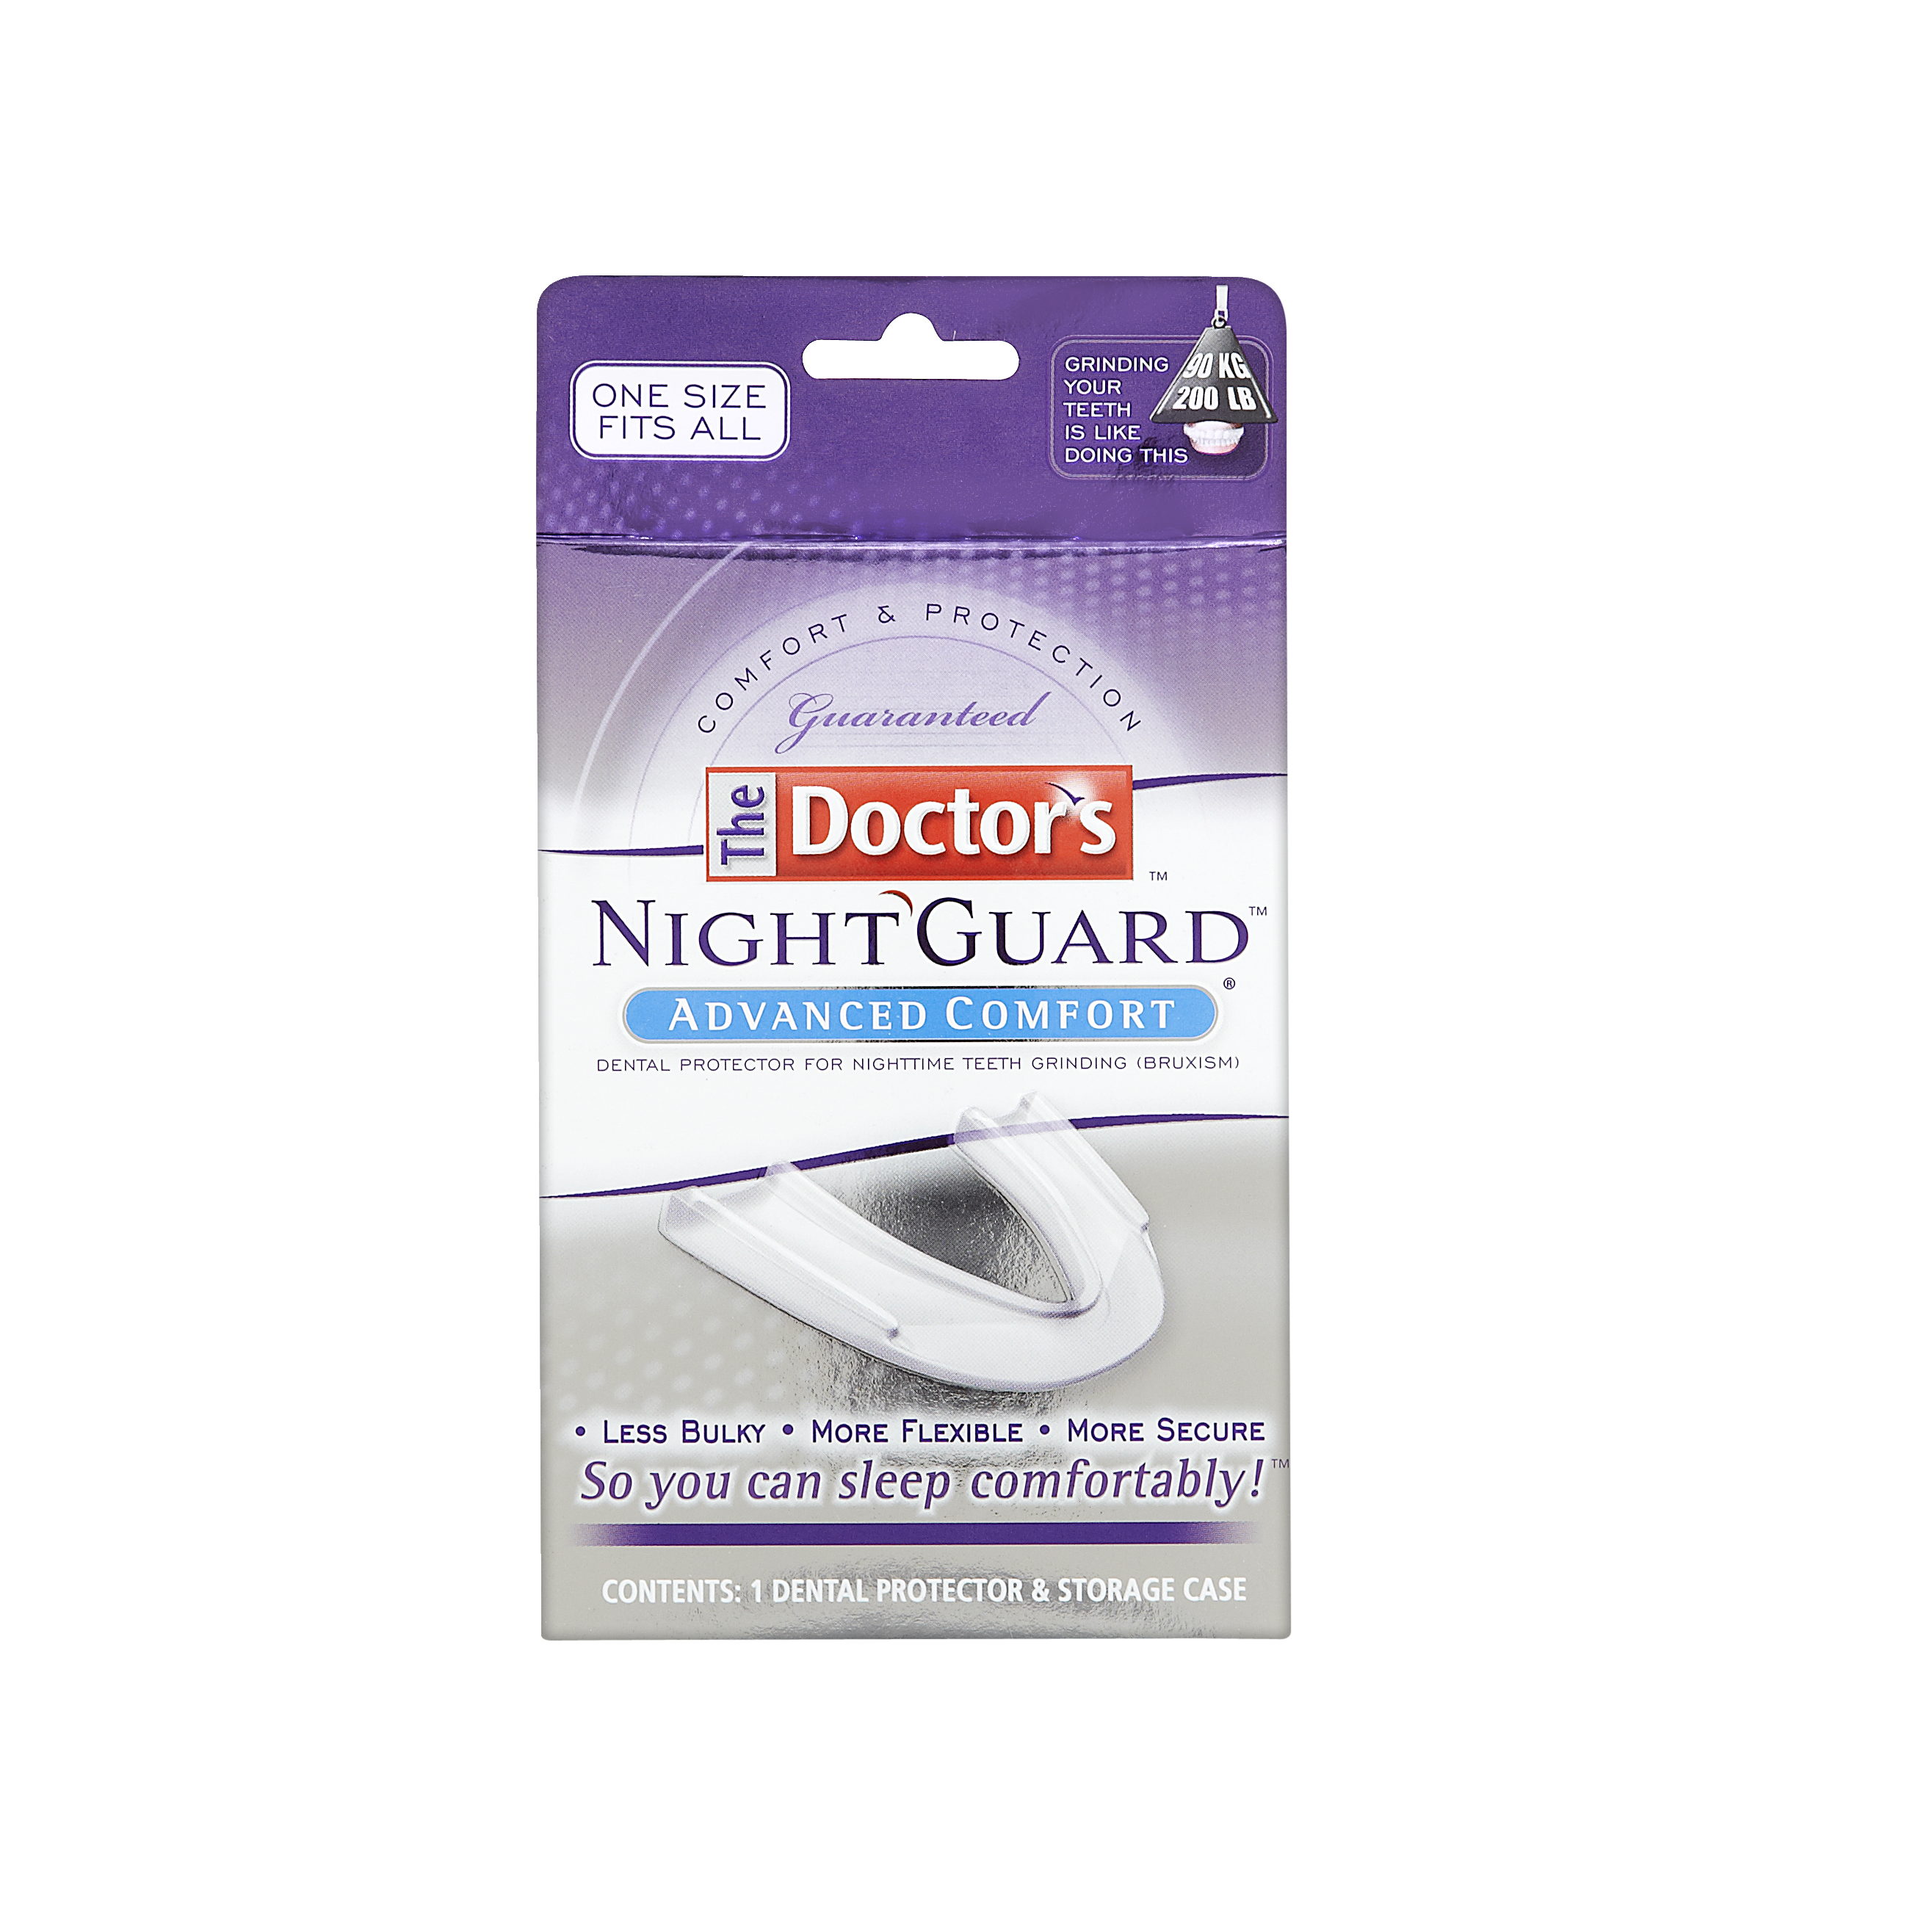 the Doctor's Night Guard Advanced Comfort